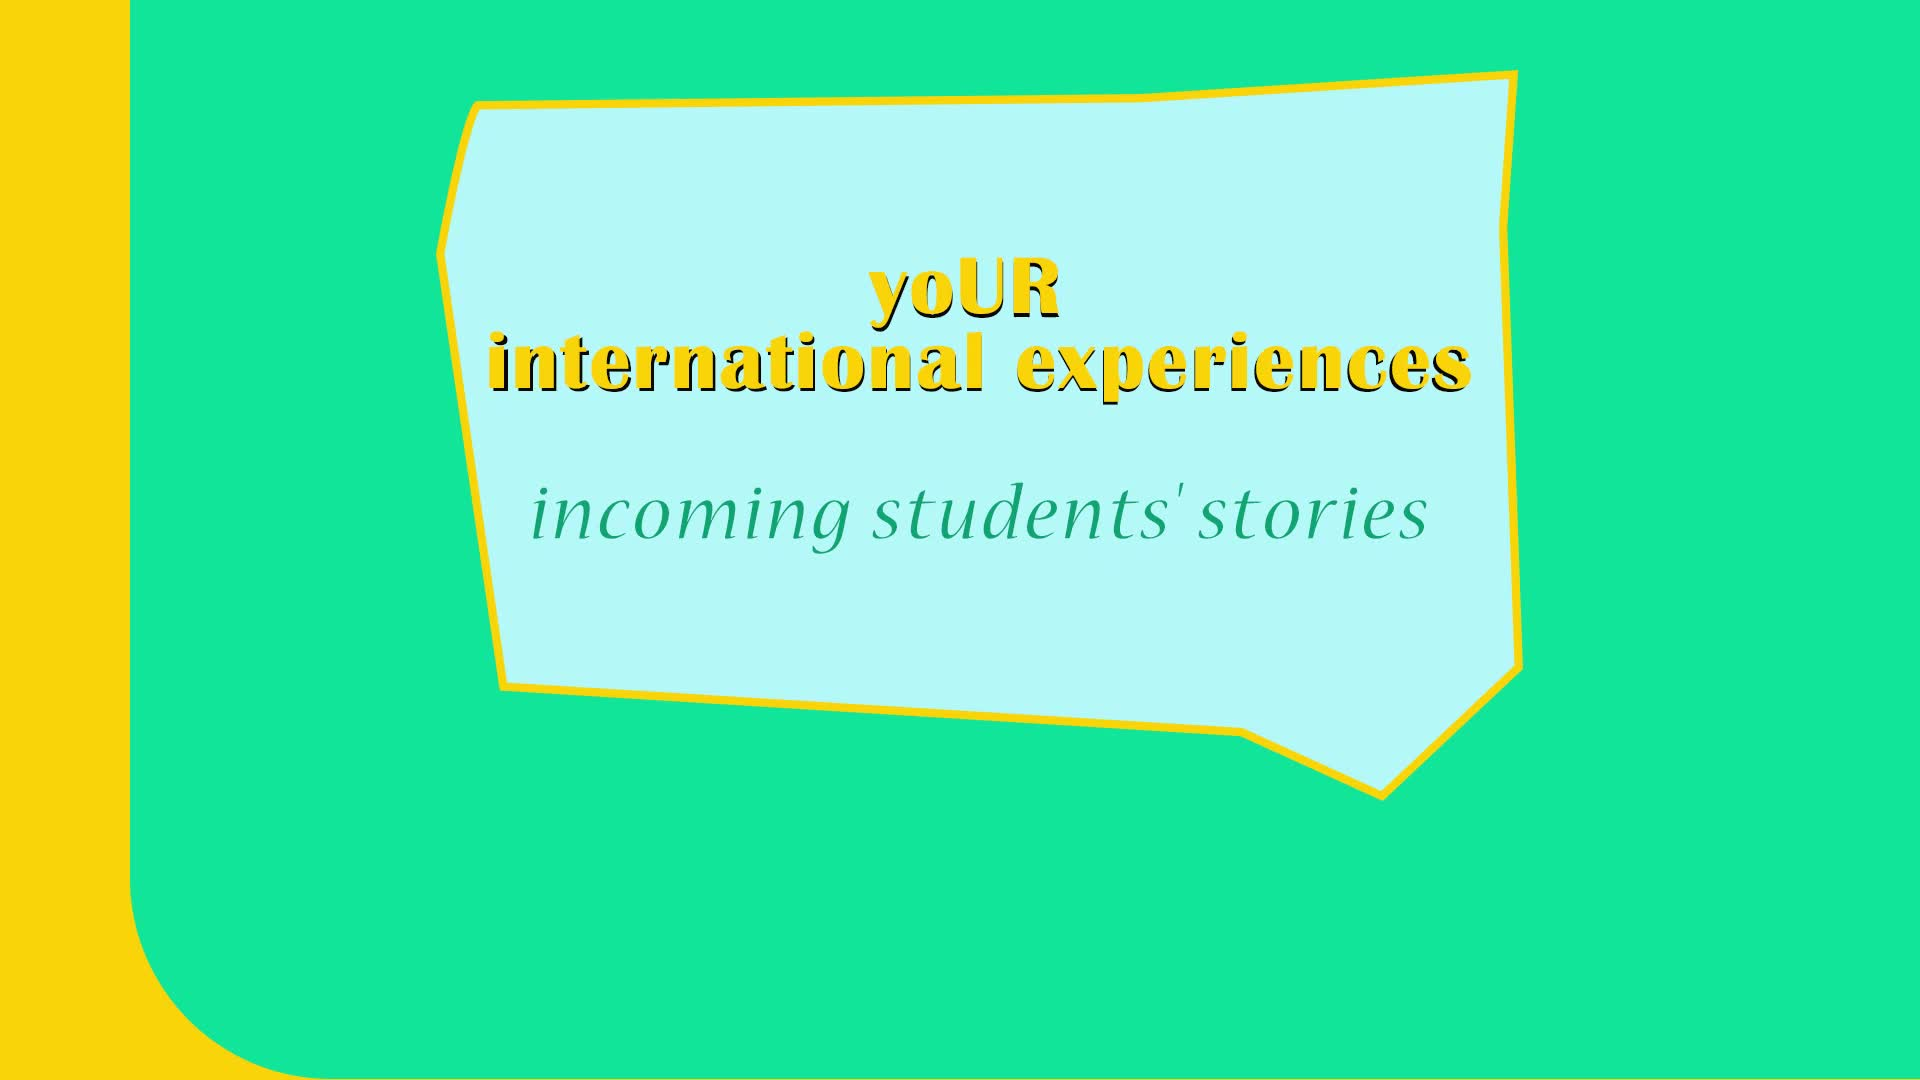 Interview with incoming students - Celia and Adrián from Spain